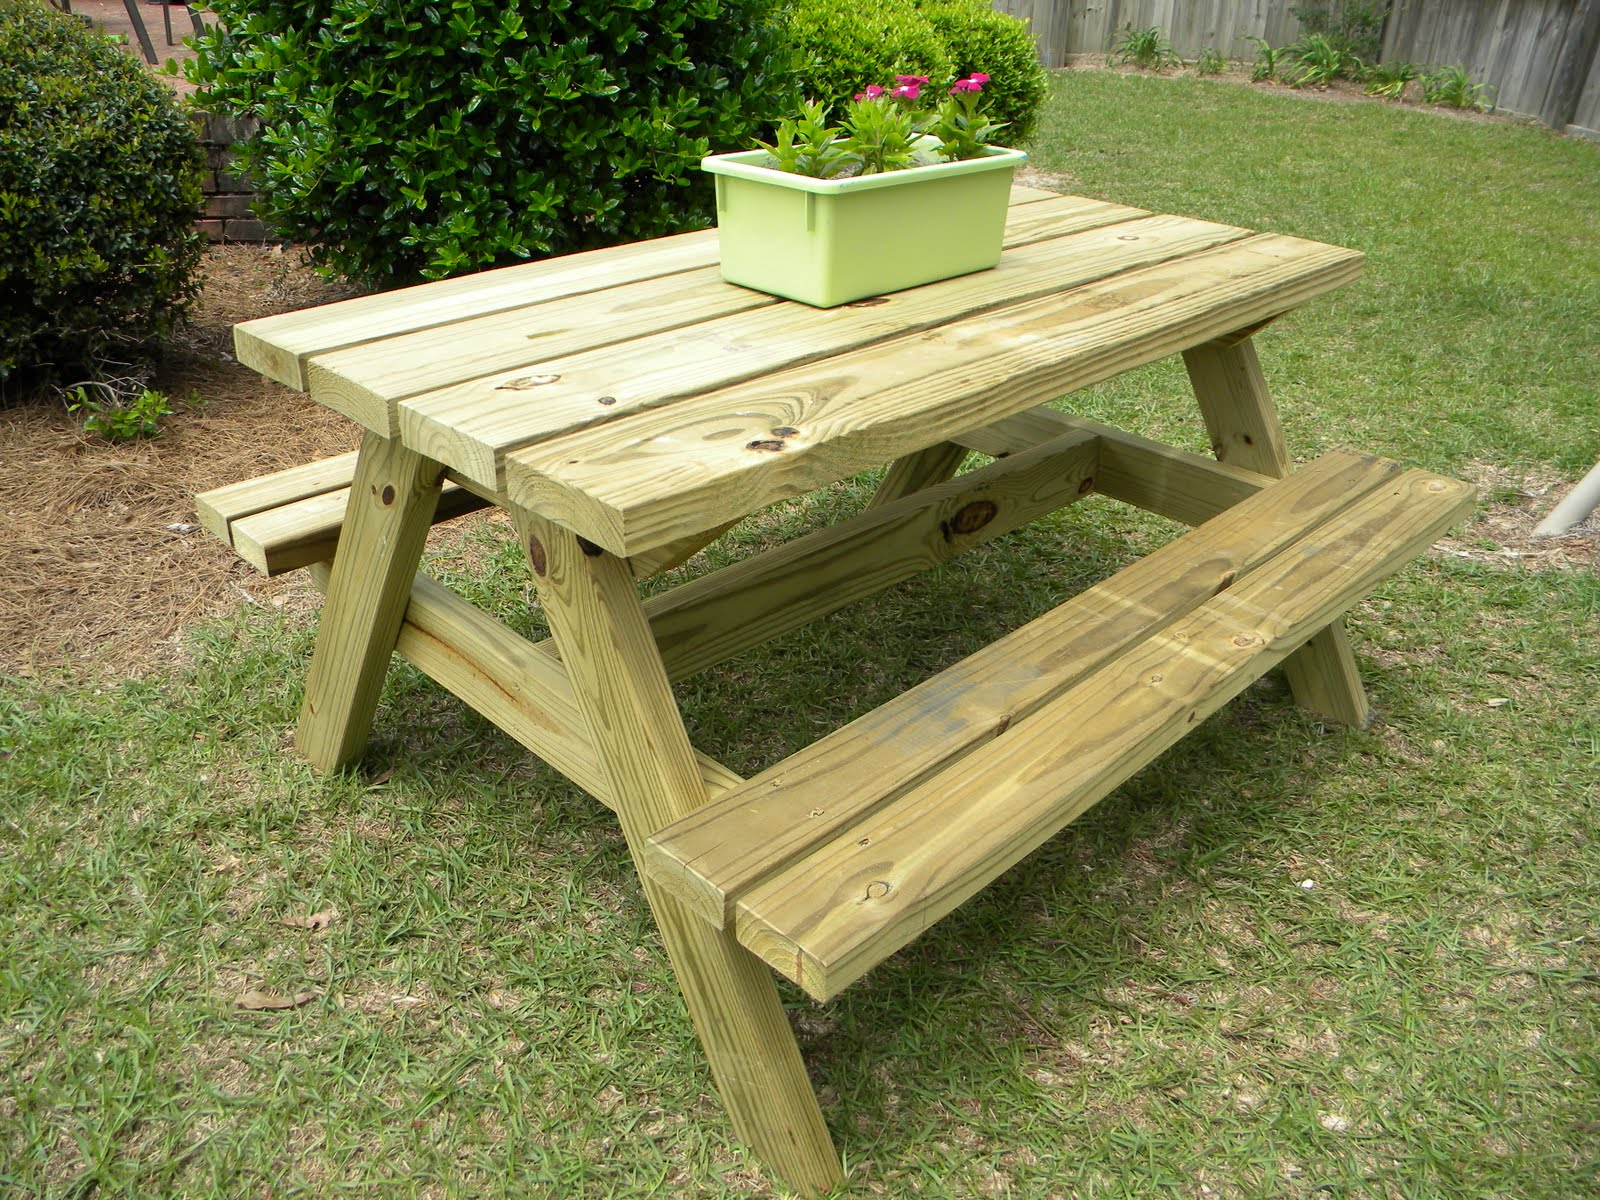 Guide to Get Picnic table with built in cooler plans ~ The bench